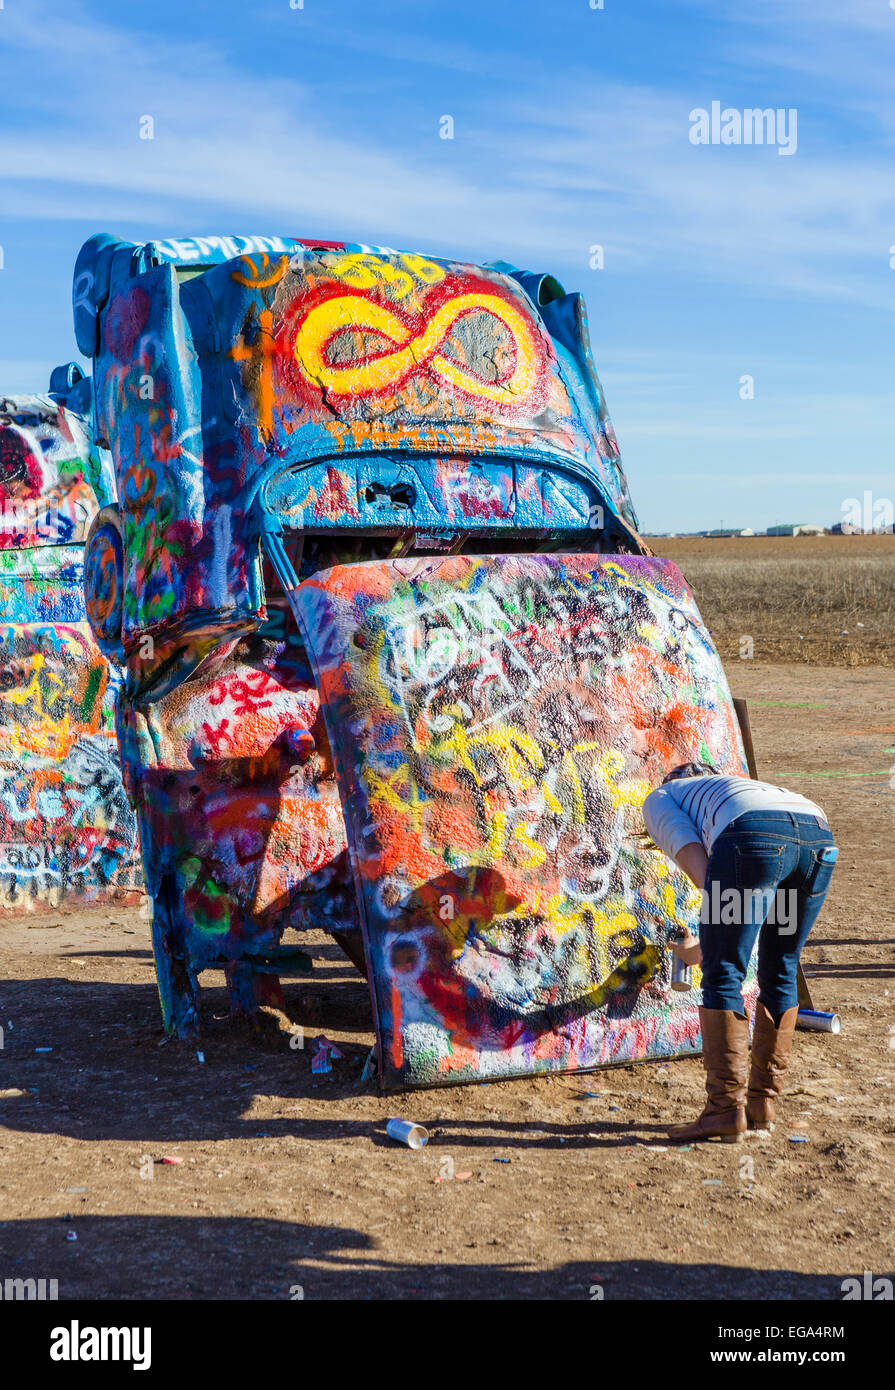 Young woman spray painting a car at the Cadillac Ranch, a public art